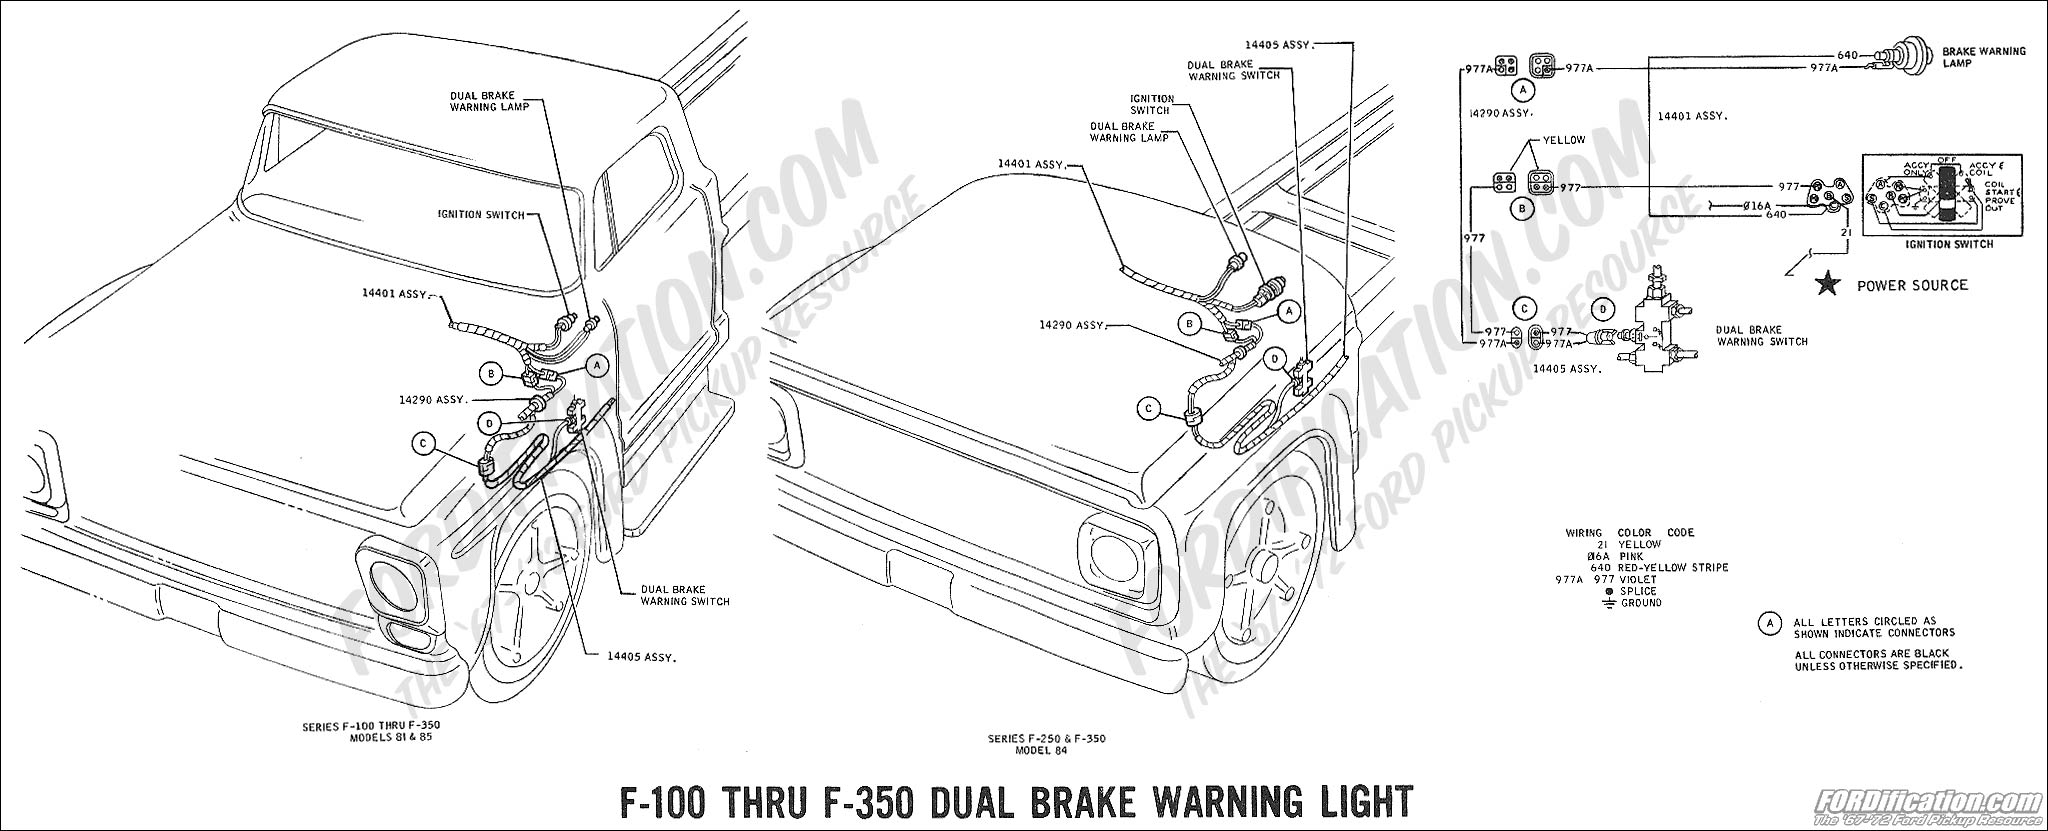 Ford Truck Technical Drawings And Schematics Section H Wiring 1971 Bronco Diagram 1969 F 100 Thru 350 Dual Brake Warning Light